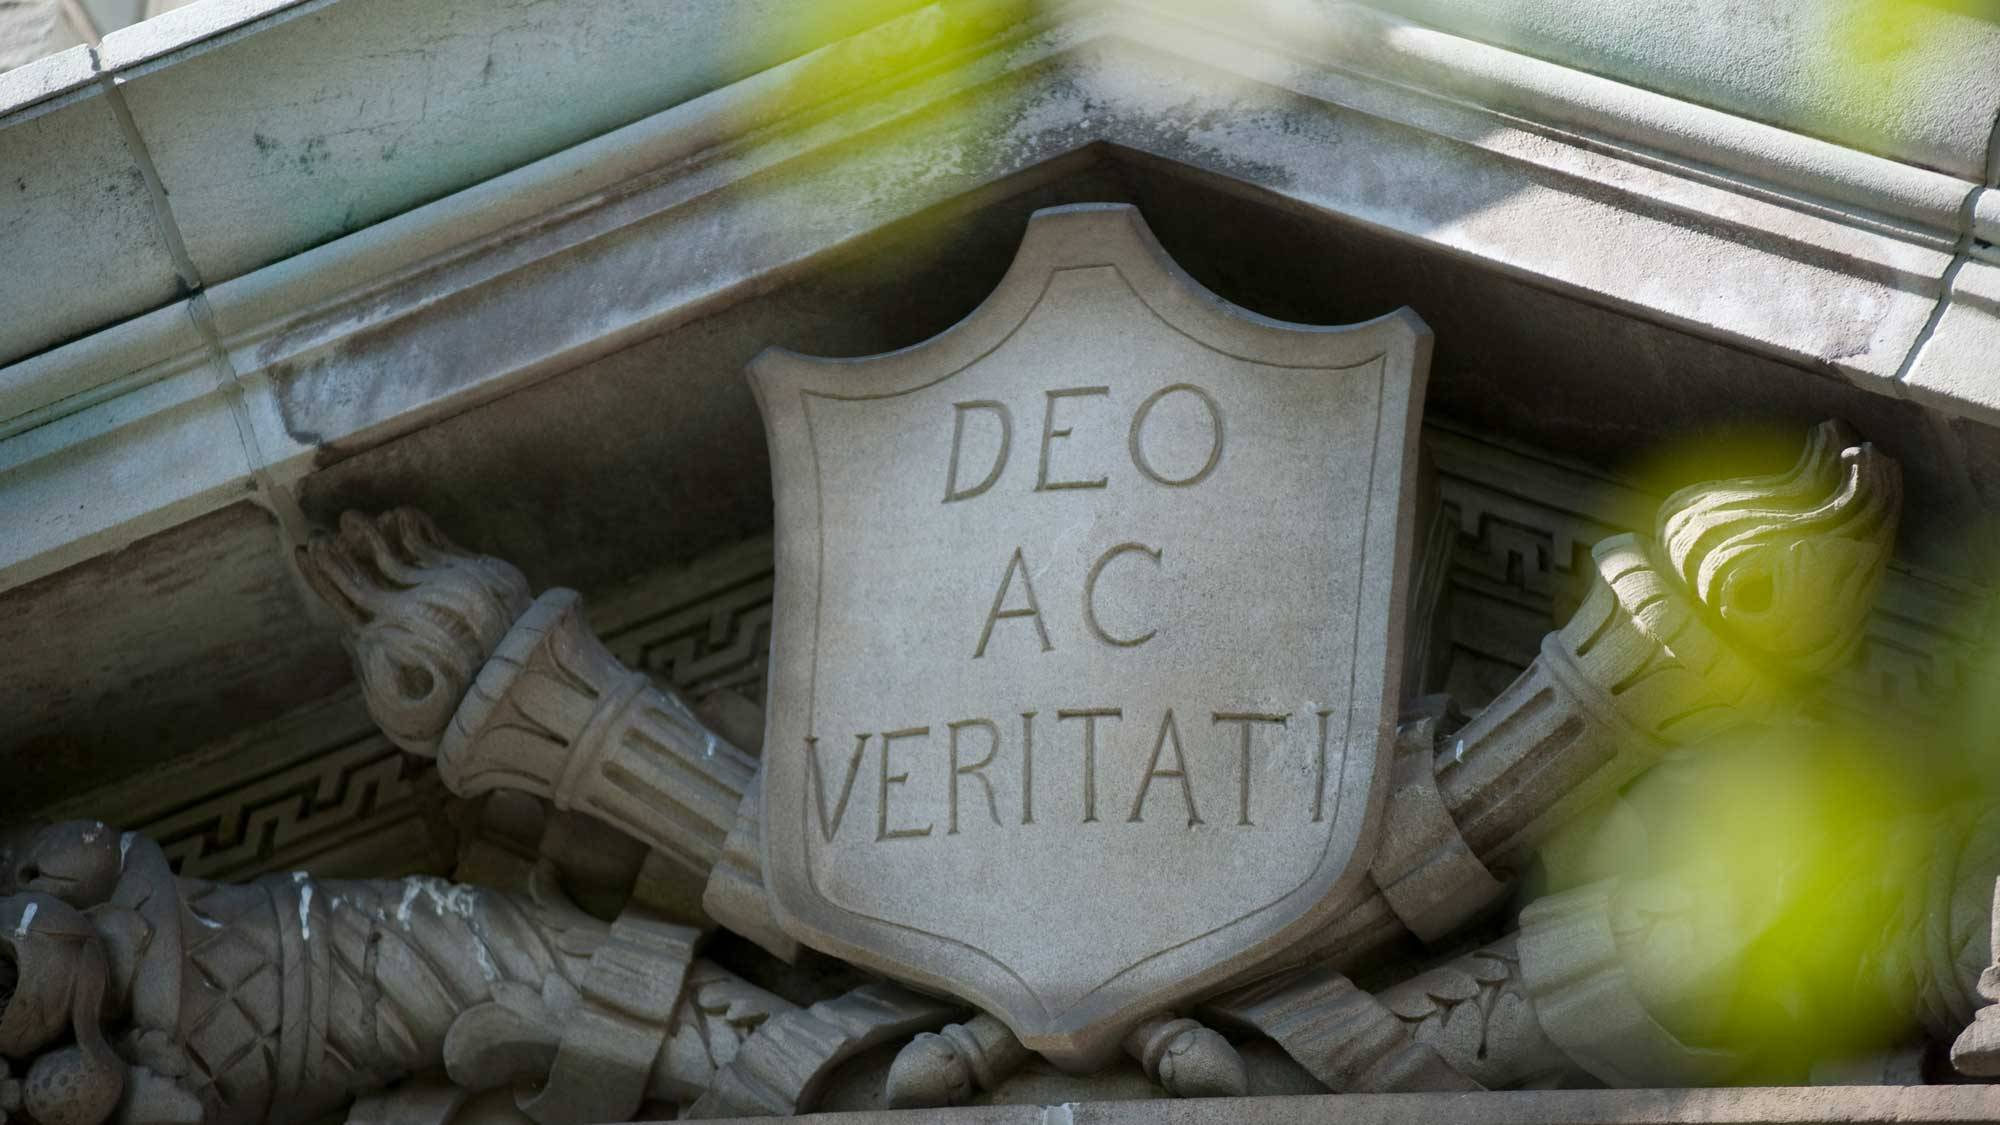 Deo Ac Veritati carved in stone